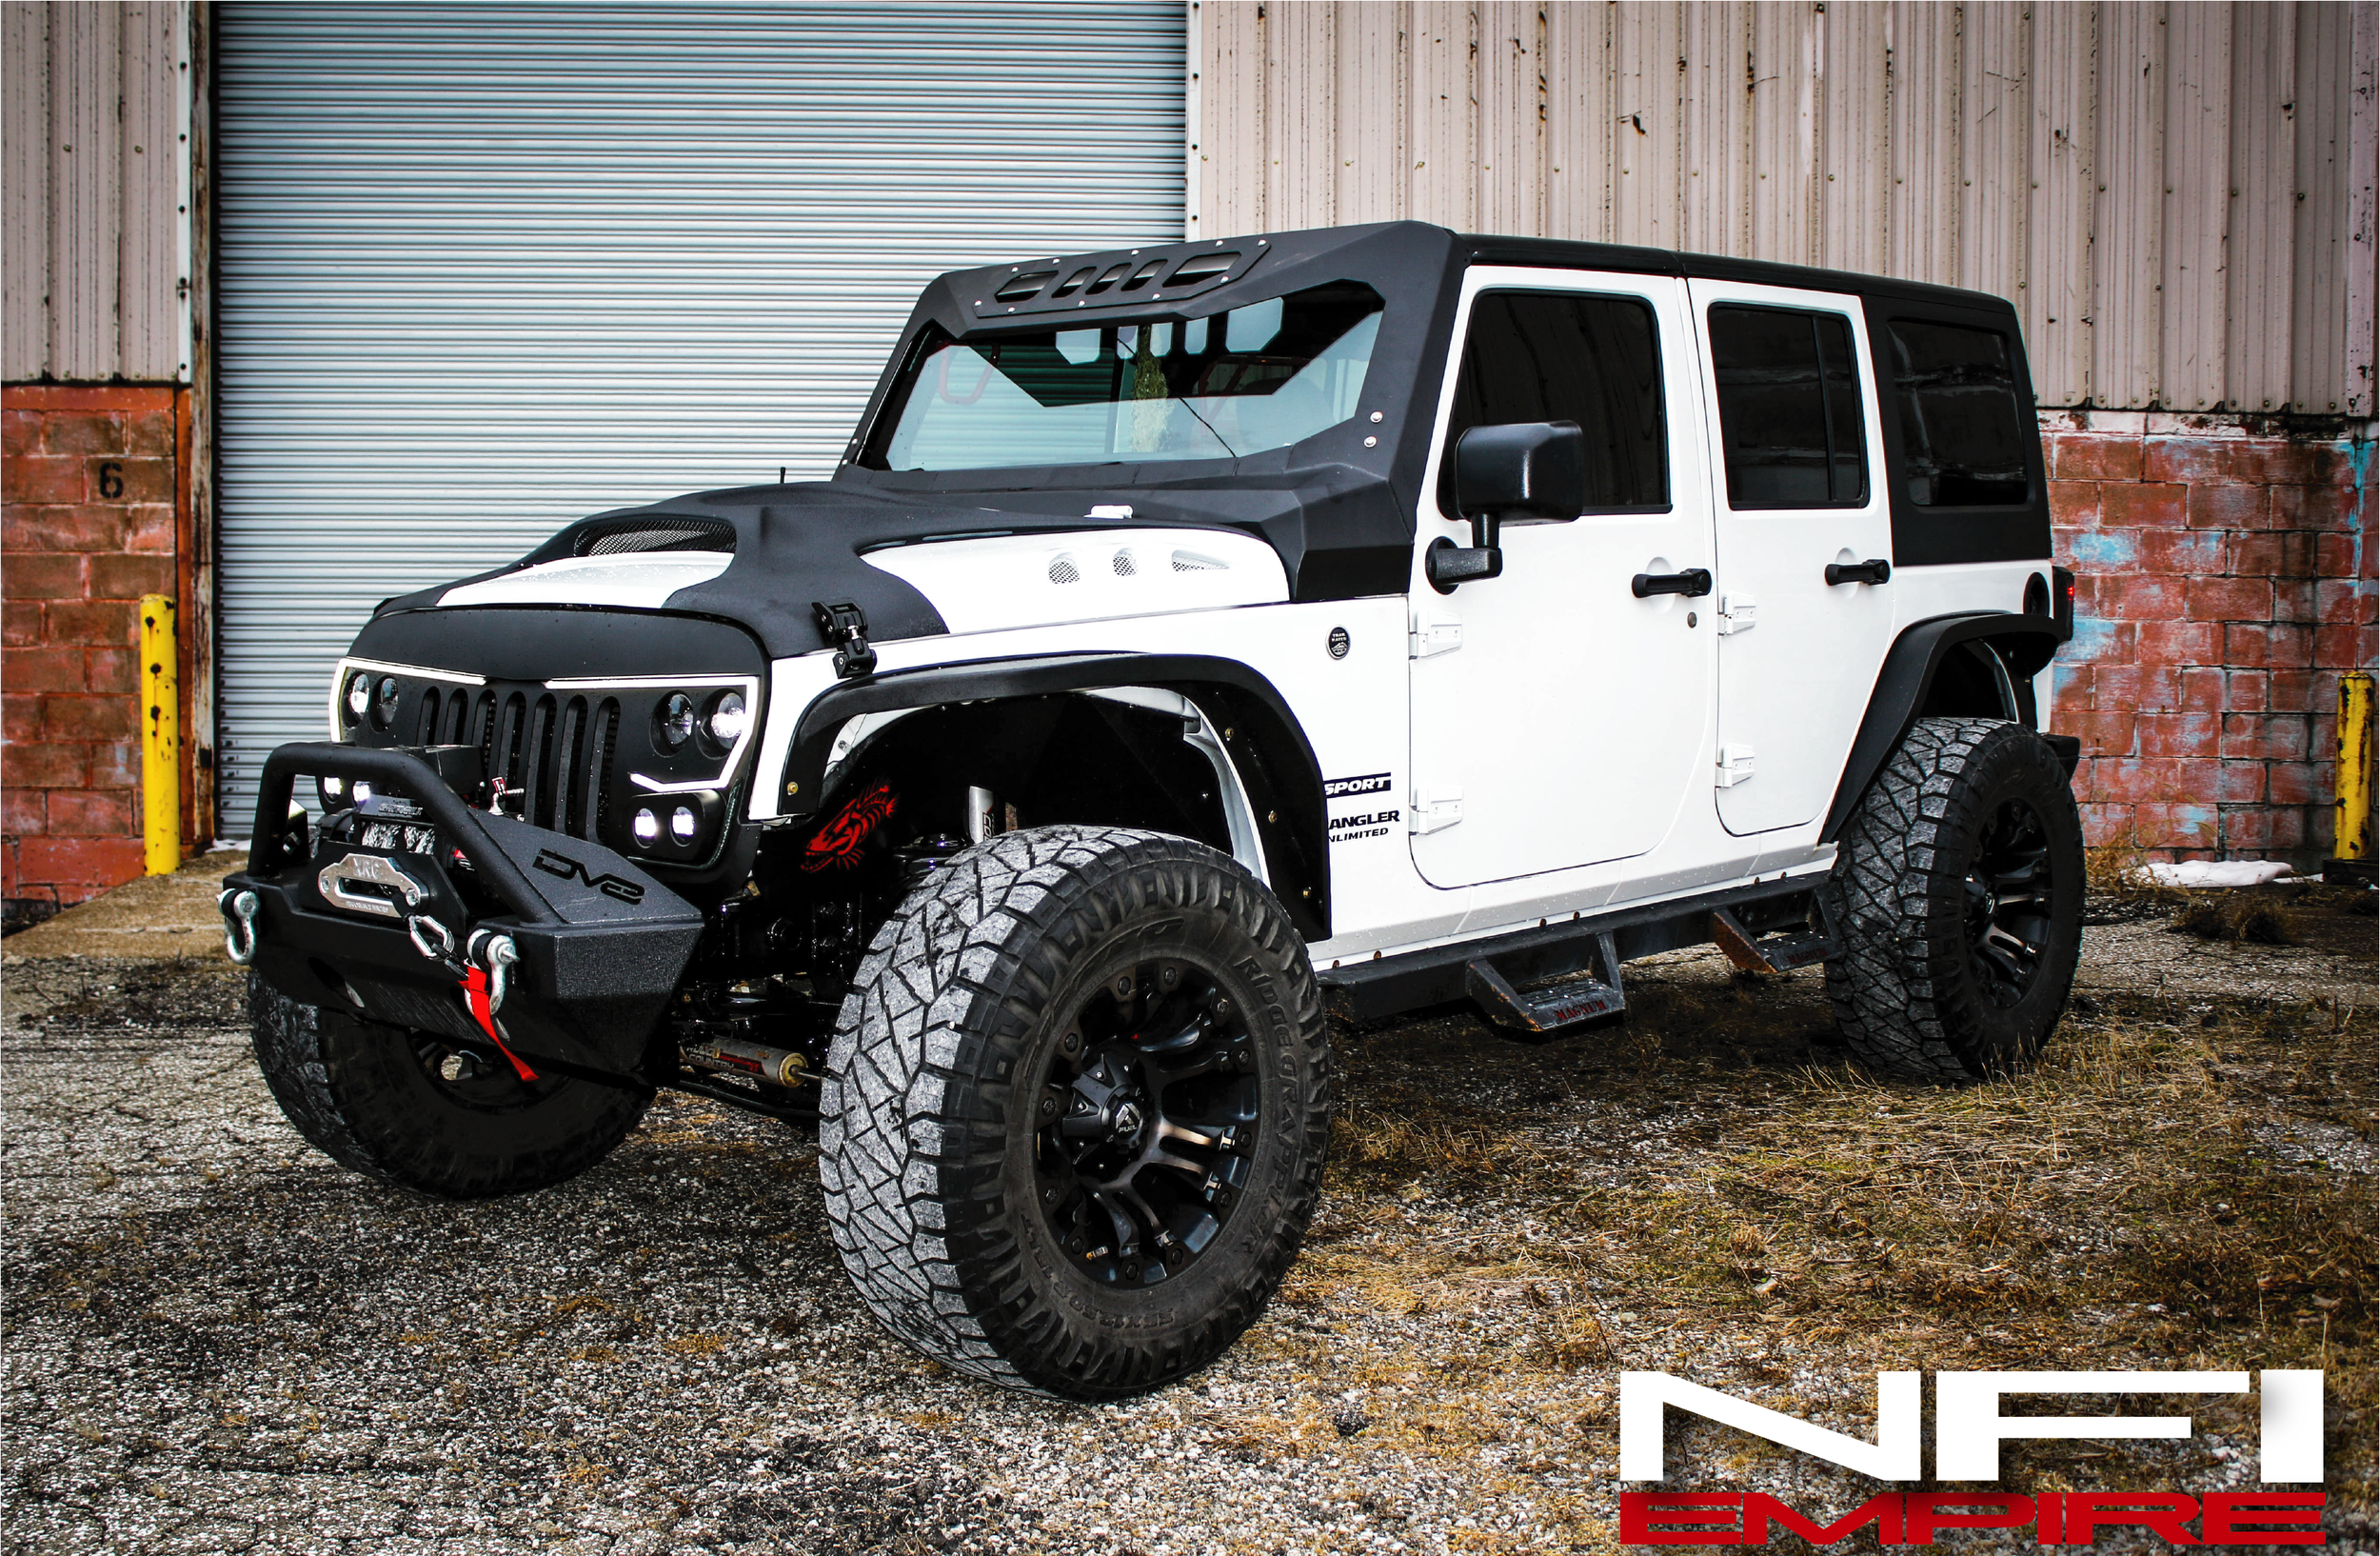 The Destroyer Jeep - *Click to View Build